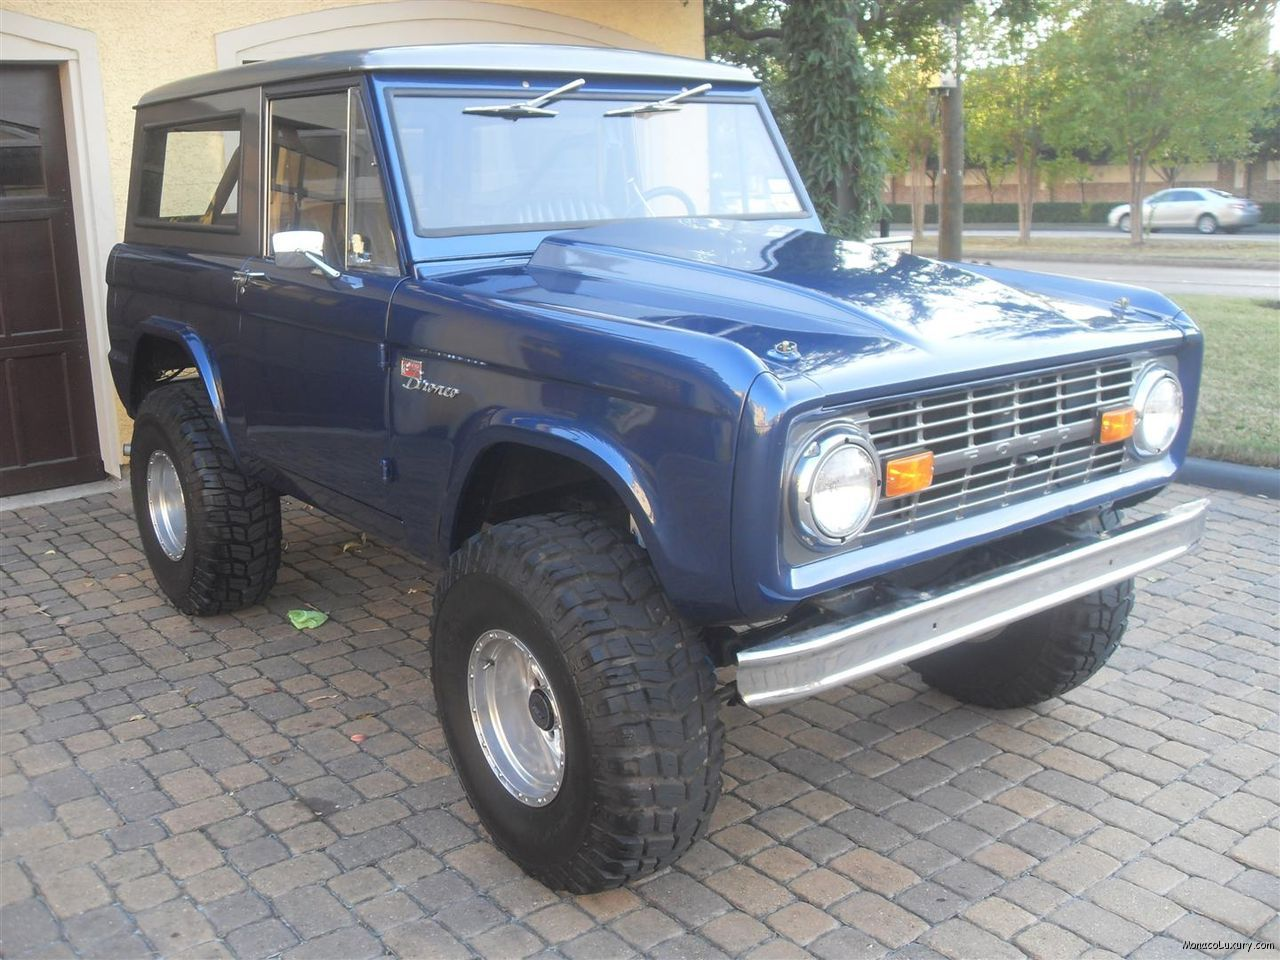 List of Synonyms and Antonyms of the Word: 1963 Ford Bronco